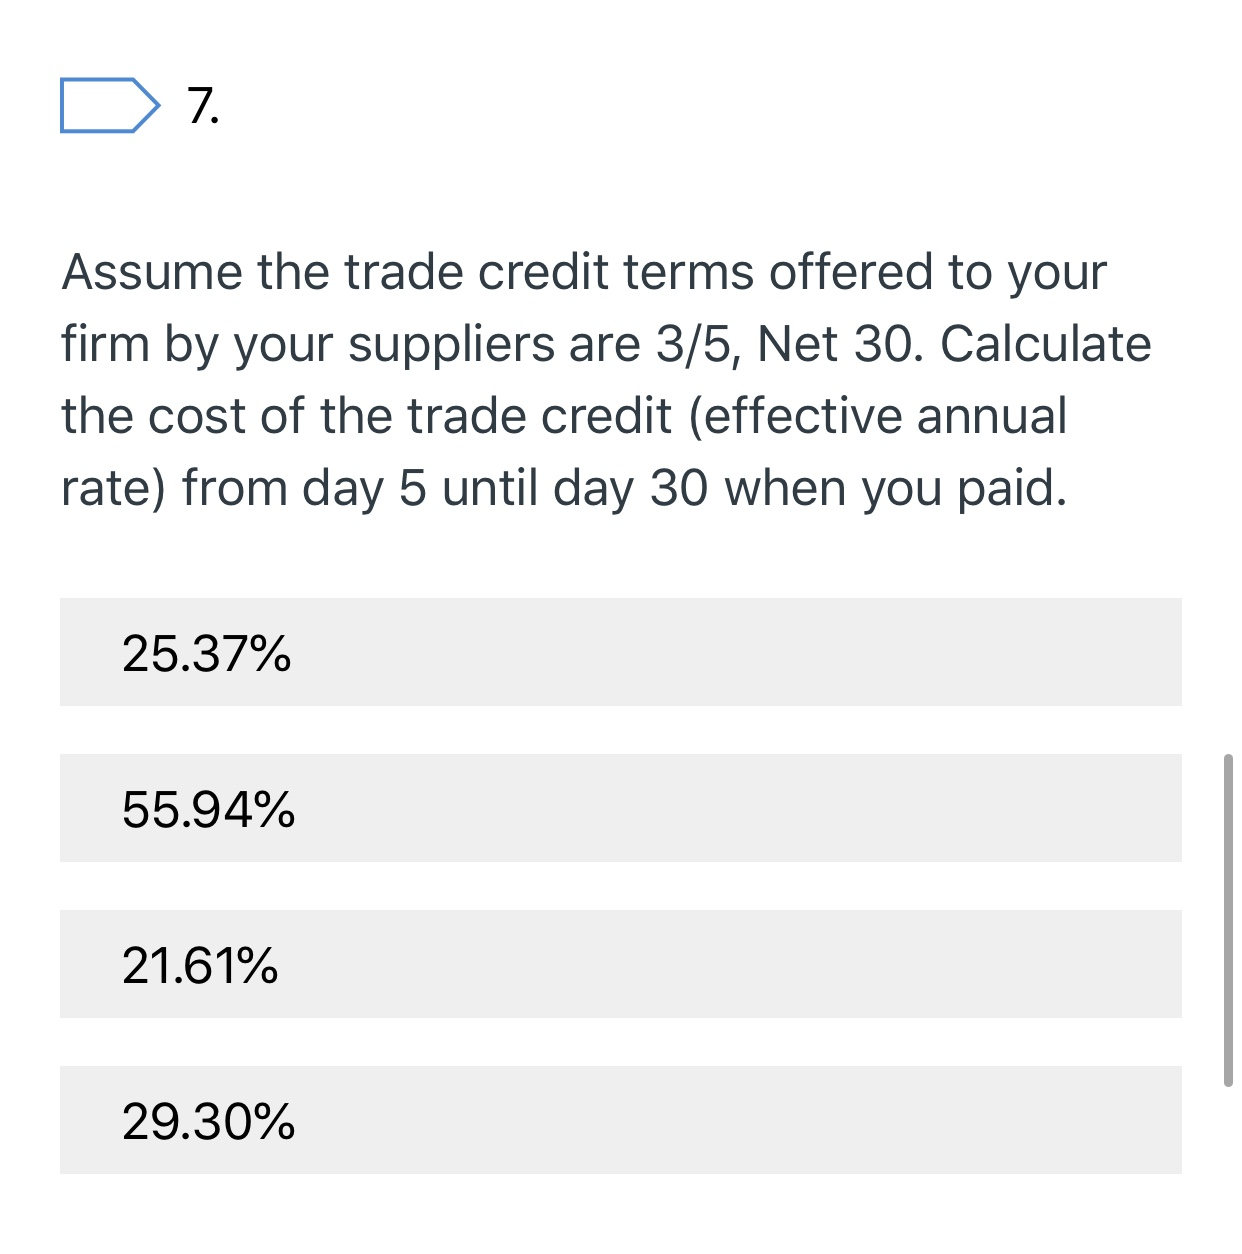 7. Assume the trade credit terms offered to your firm by your suppliers are 3/5, Net 30. Calculate the cost of the trade credit (effective annual rate) from day 5 until day 30 when you paid. 25.37% 55.94% 21.61% 29.30%